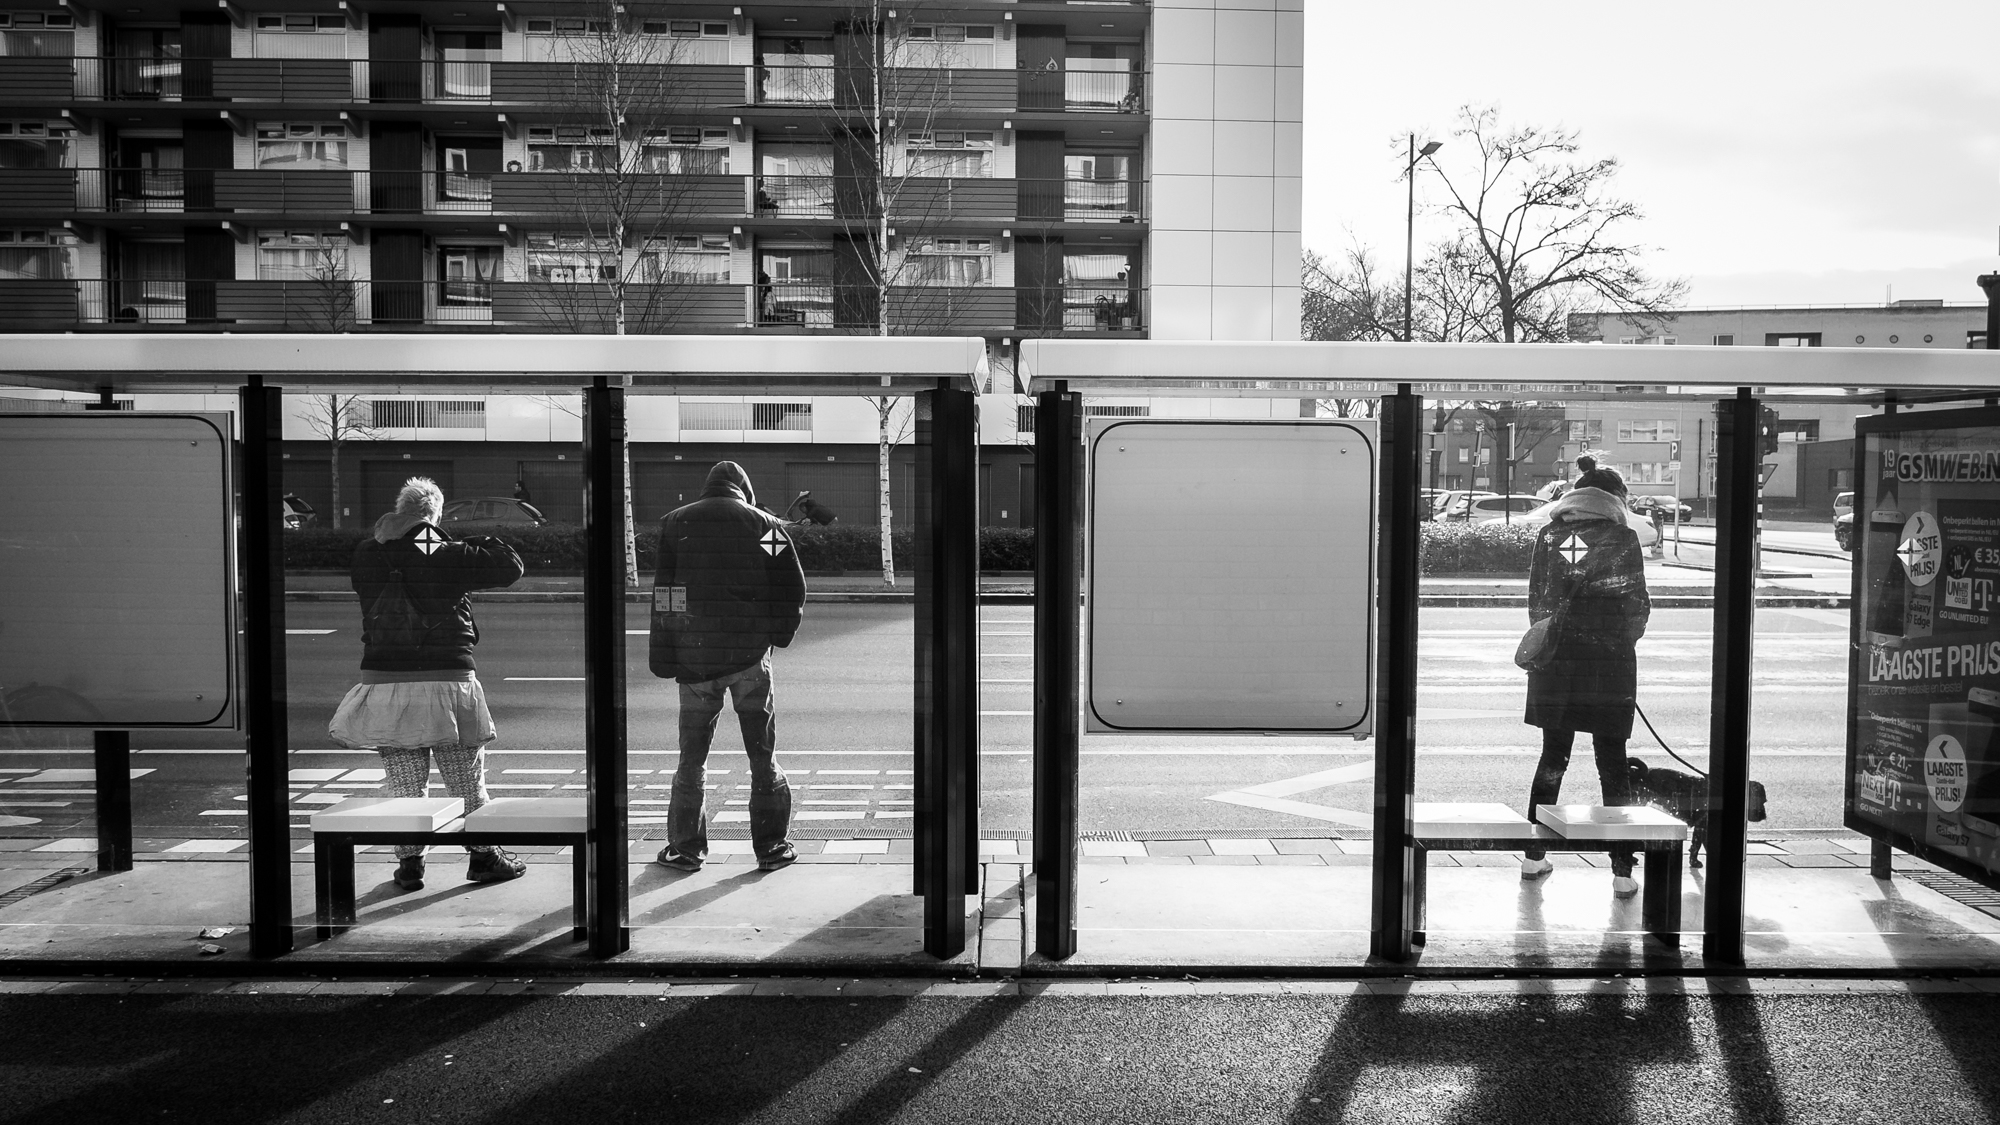 +Busstop_05-02-2017_WilliamvanderVoort